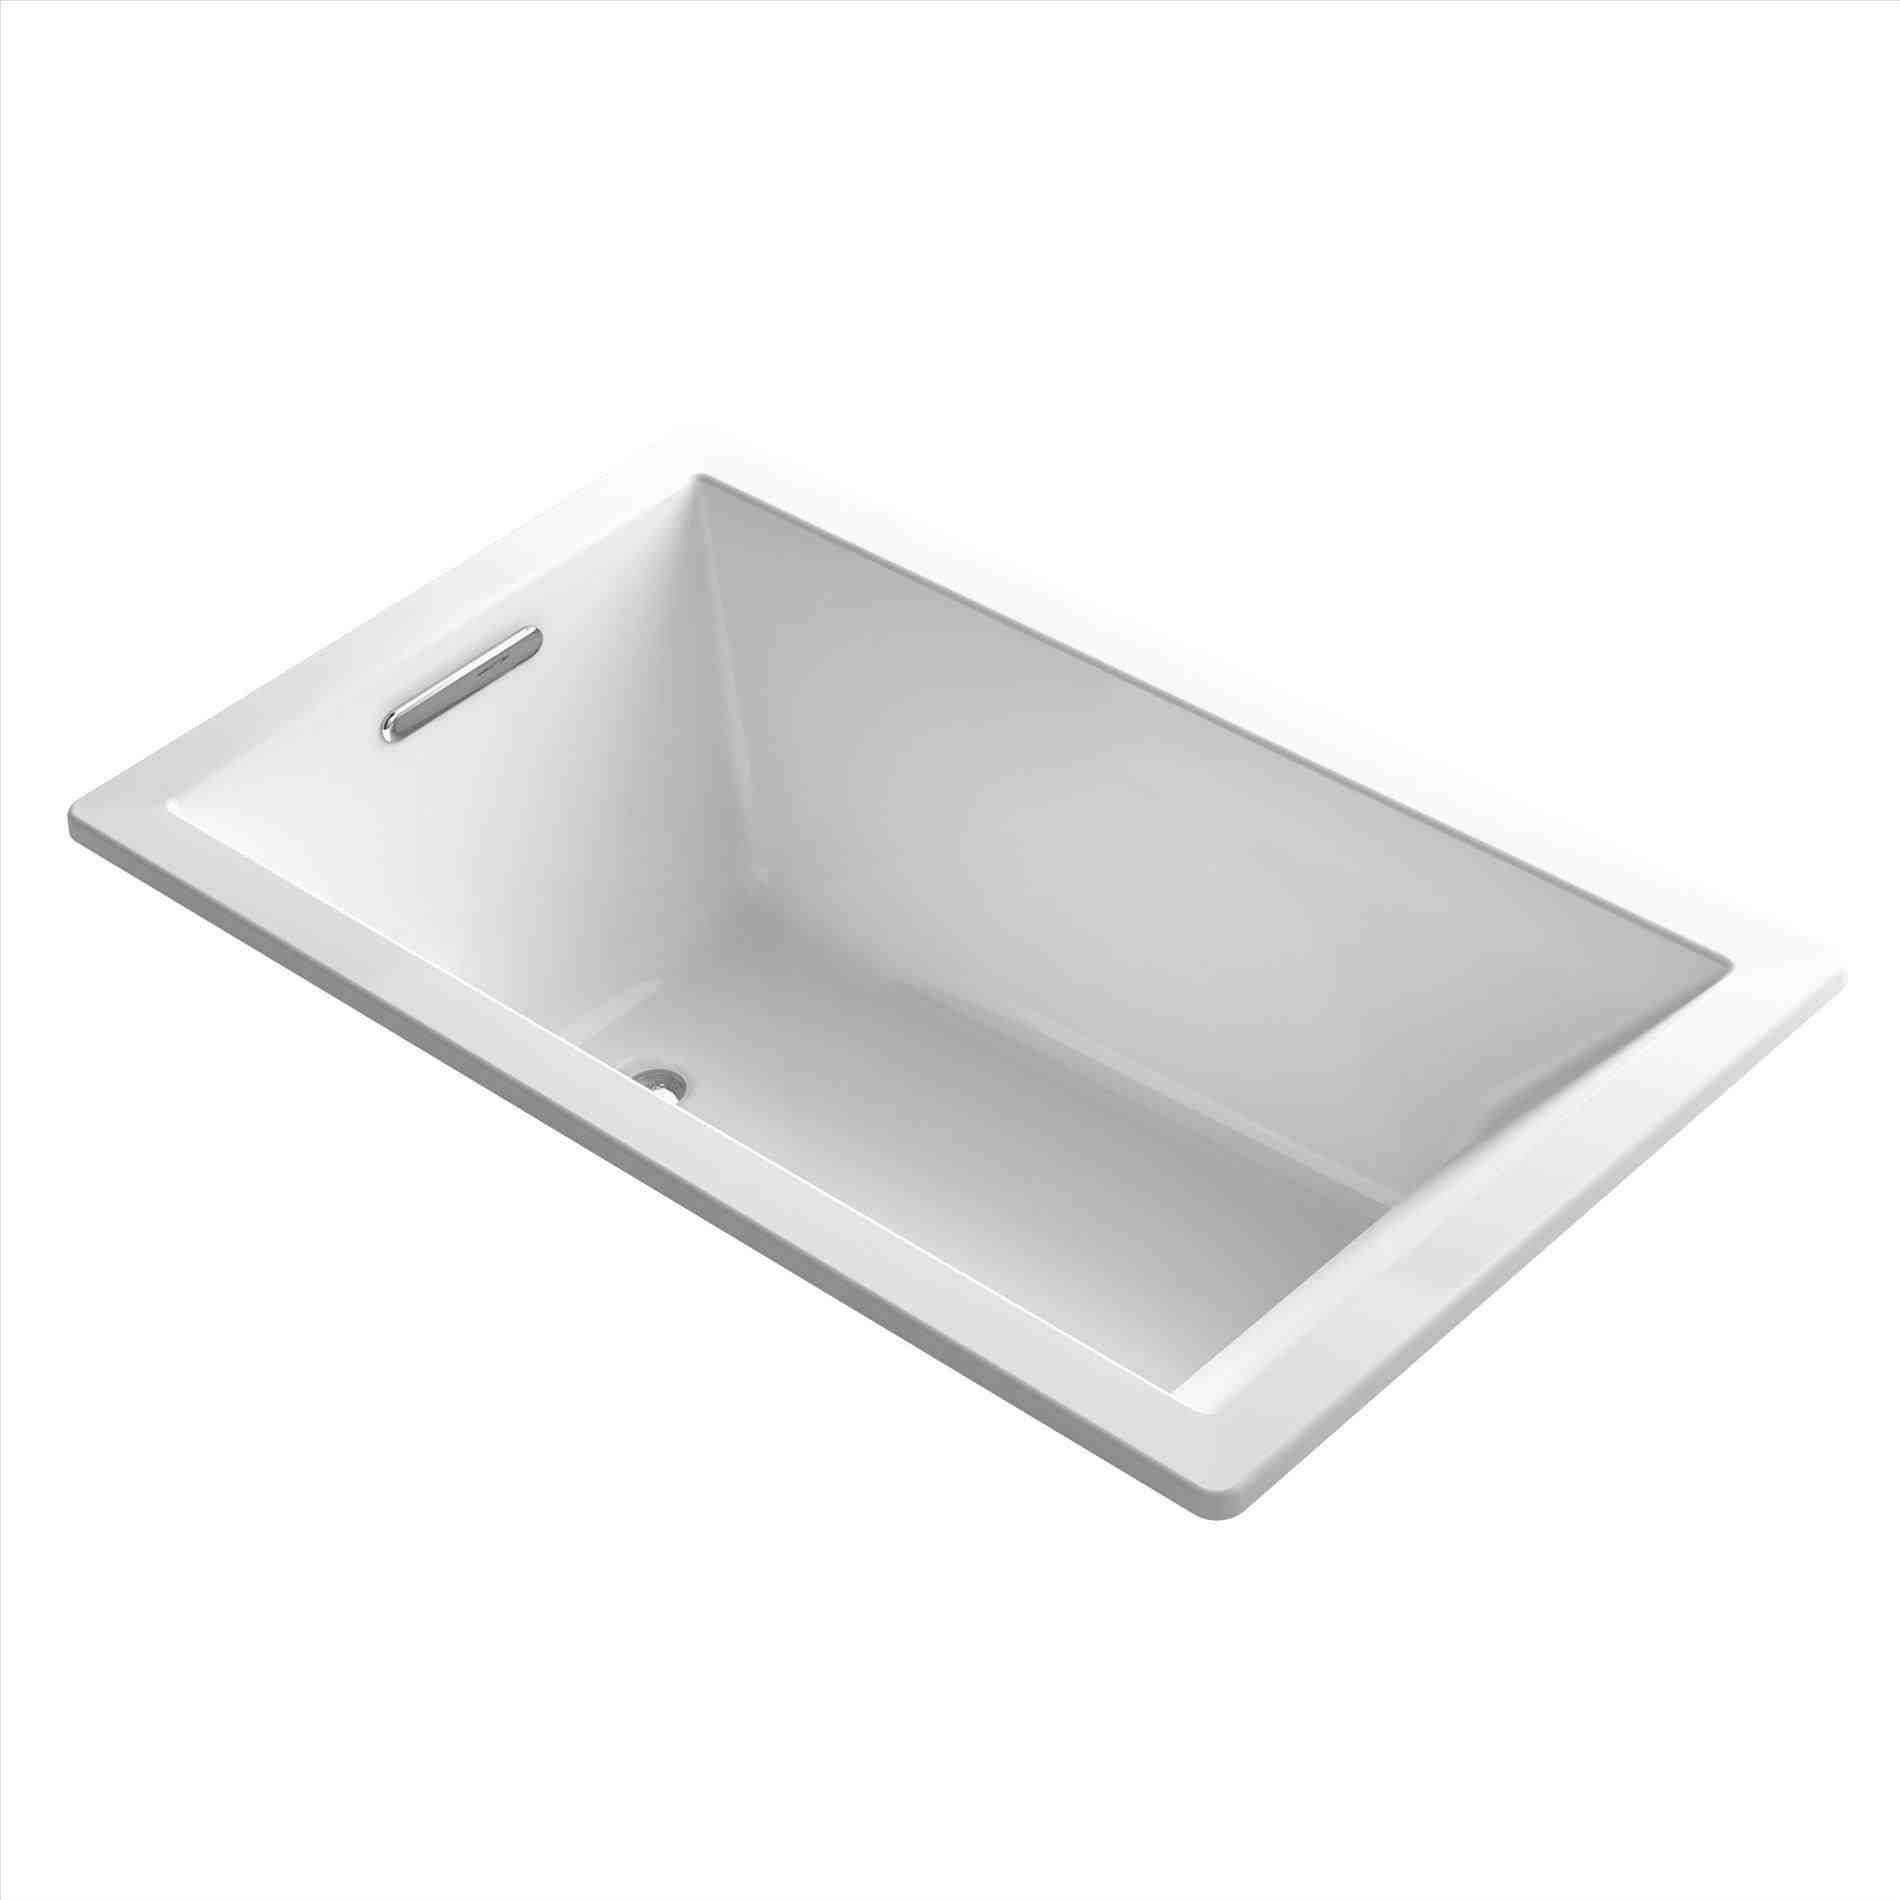 This Drop In Tub Dimensions Full Image For Compact Drop In Bathtub within proportions 1900 X 1900